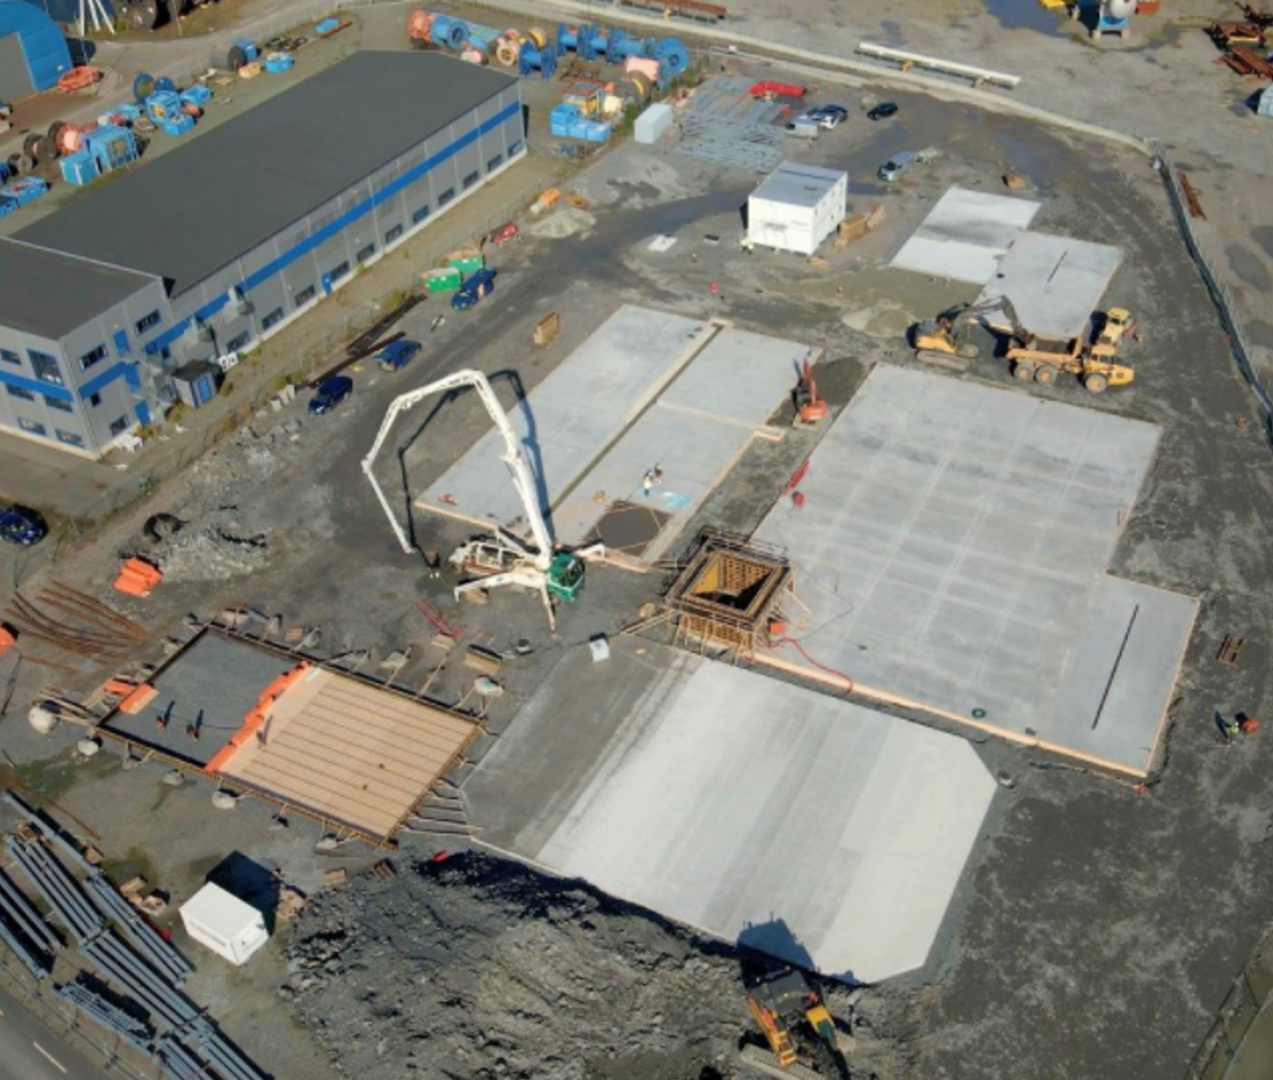 Antec - biogas - Stord prodject - image.